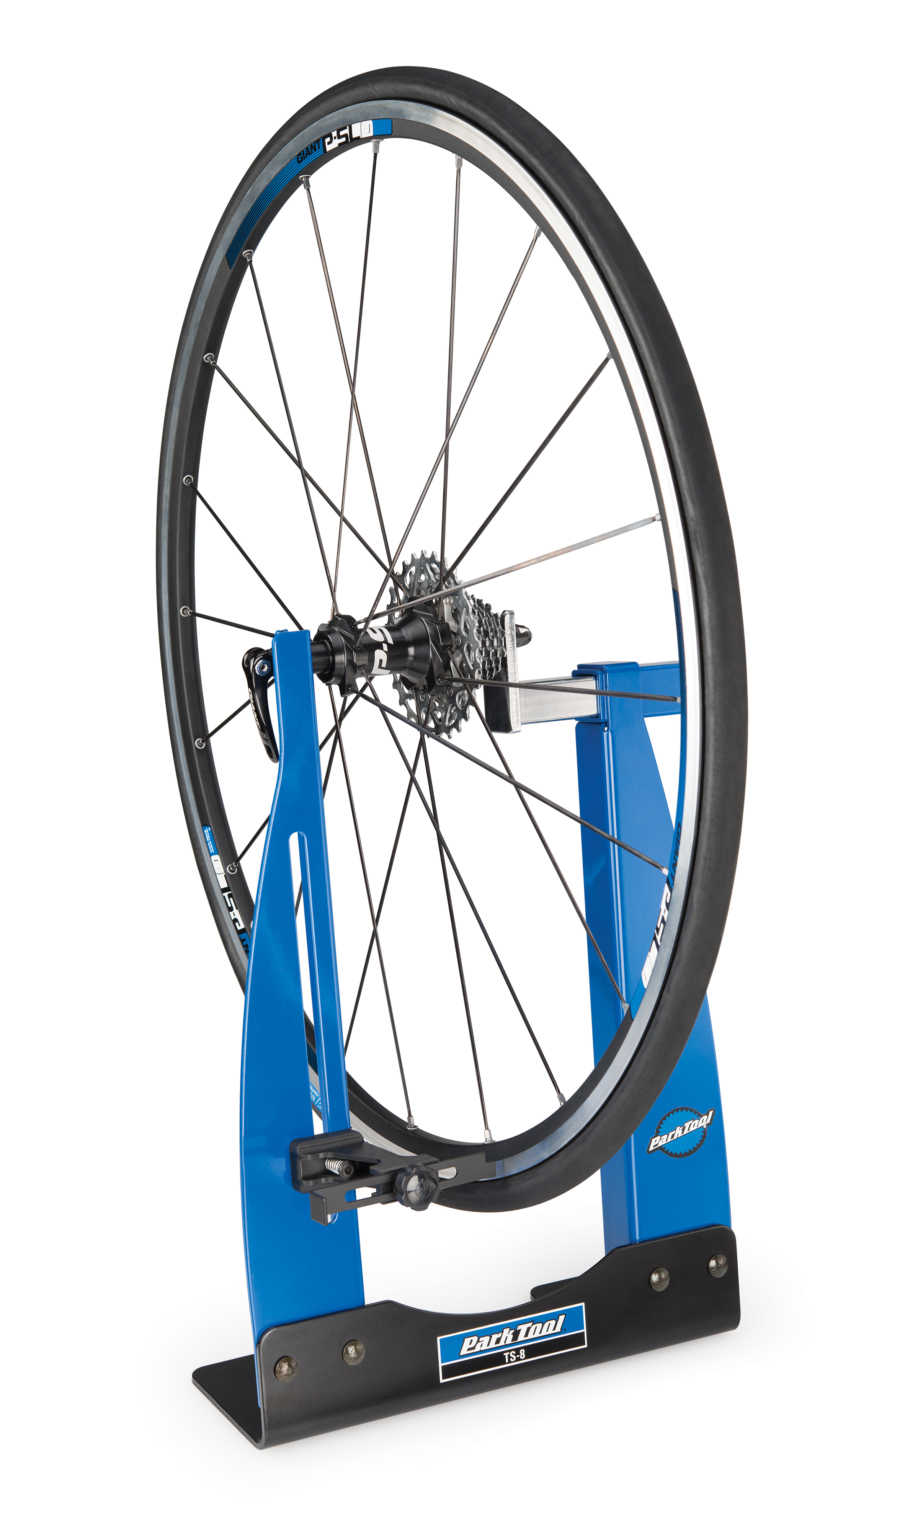 The Park Tool TS-8 Home Mechanic Wheel Truing Stand holding bike wheel, enlarged